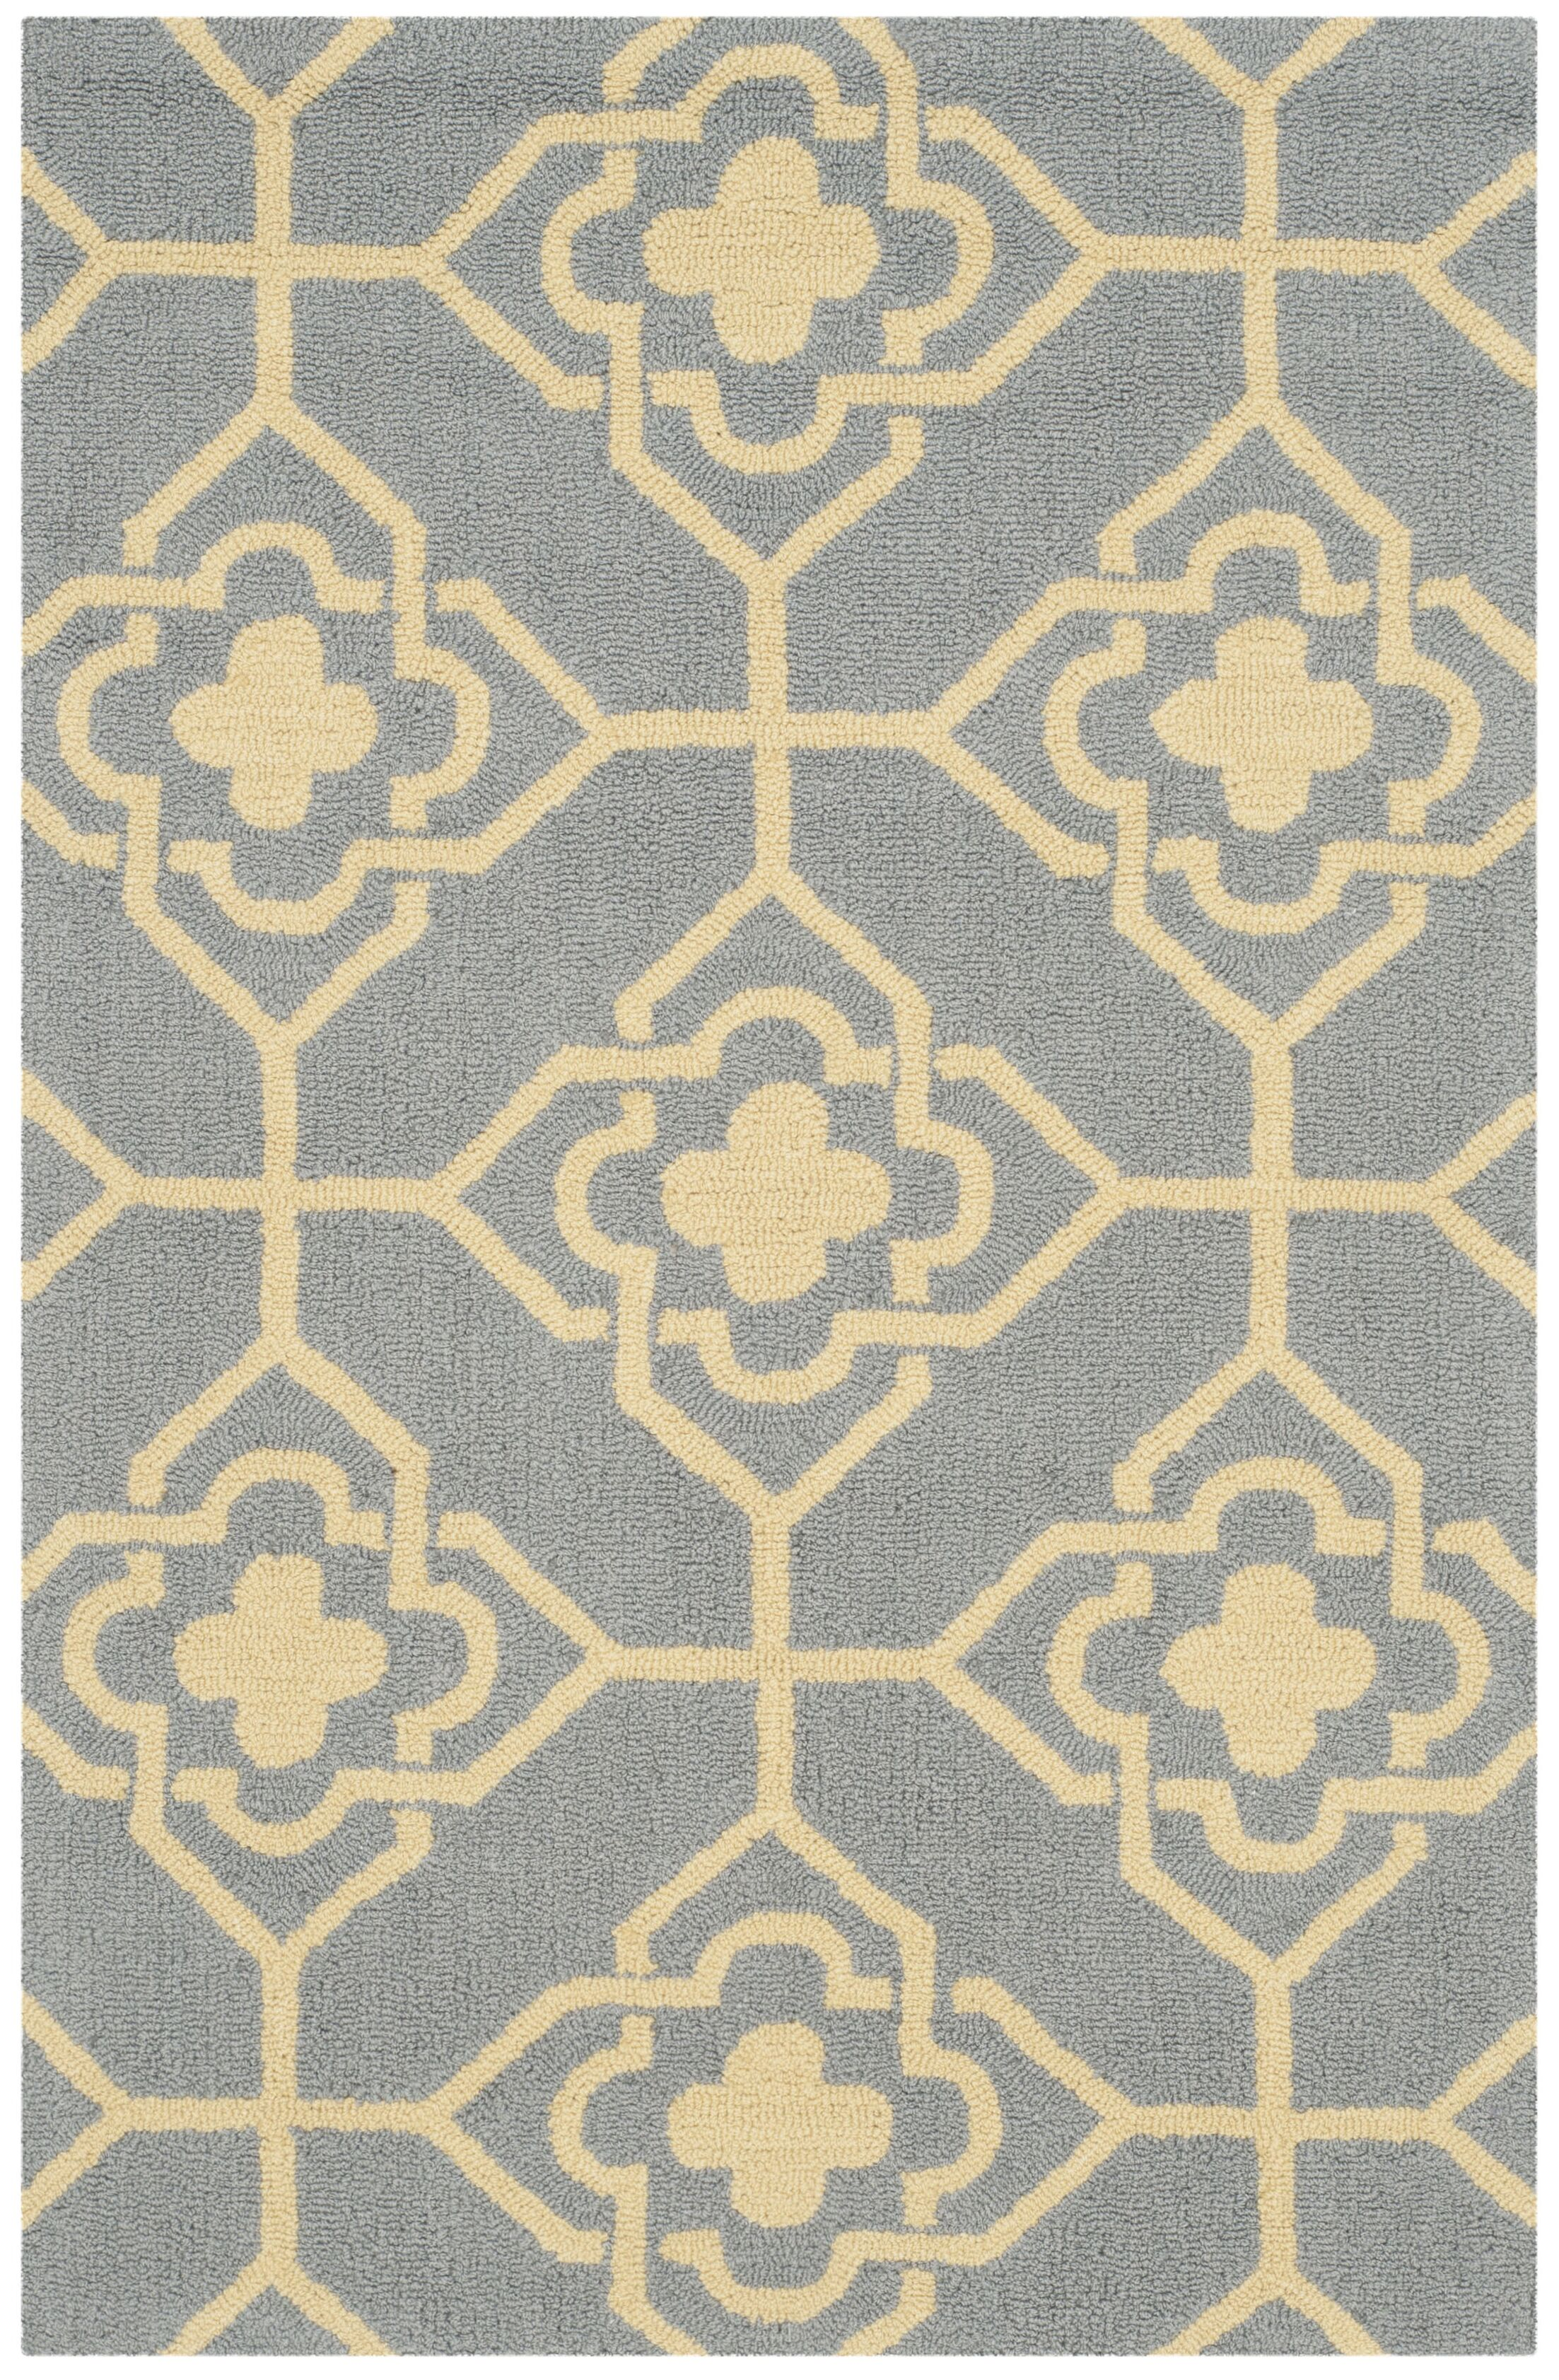 Greenbaum Hand-Hooked Gray/Gold Area Rug Rug Size: Rectangle 3'6